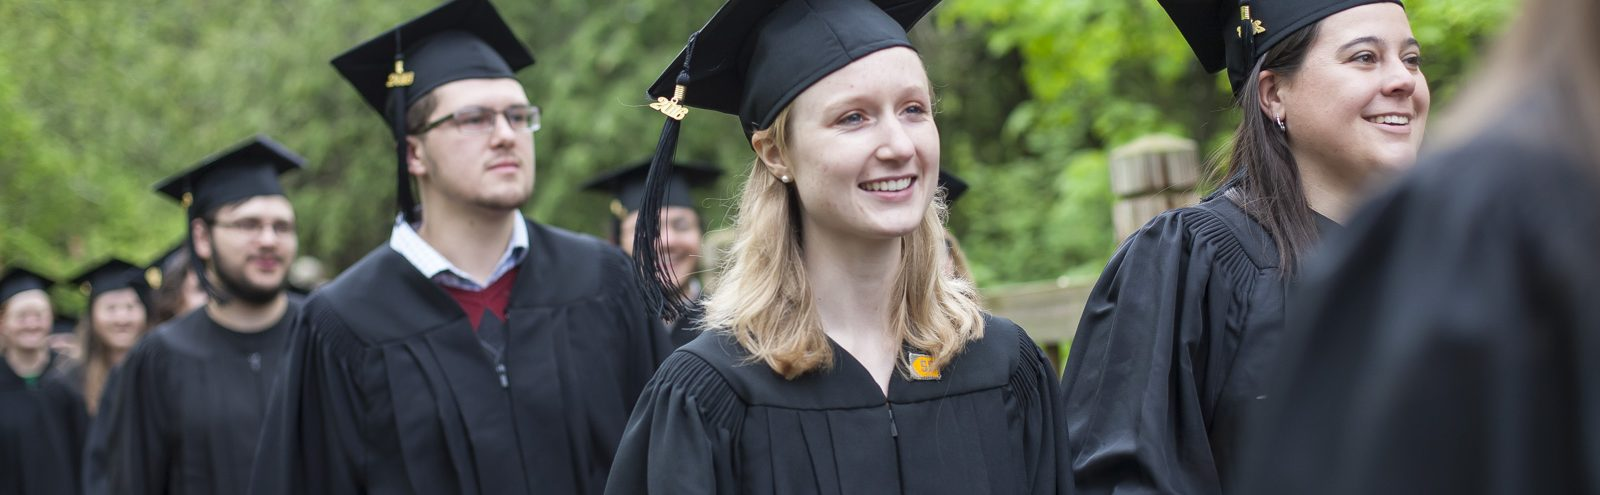 Liz White in cap and gown